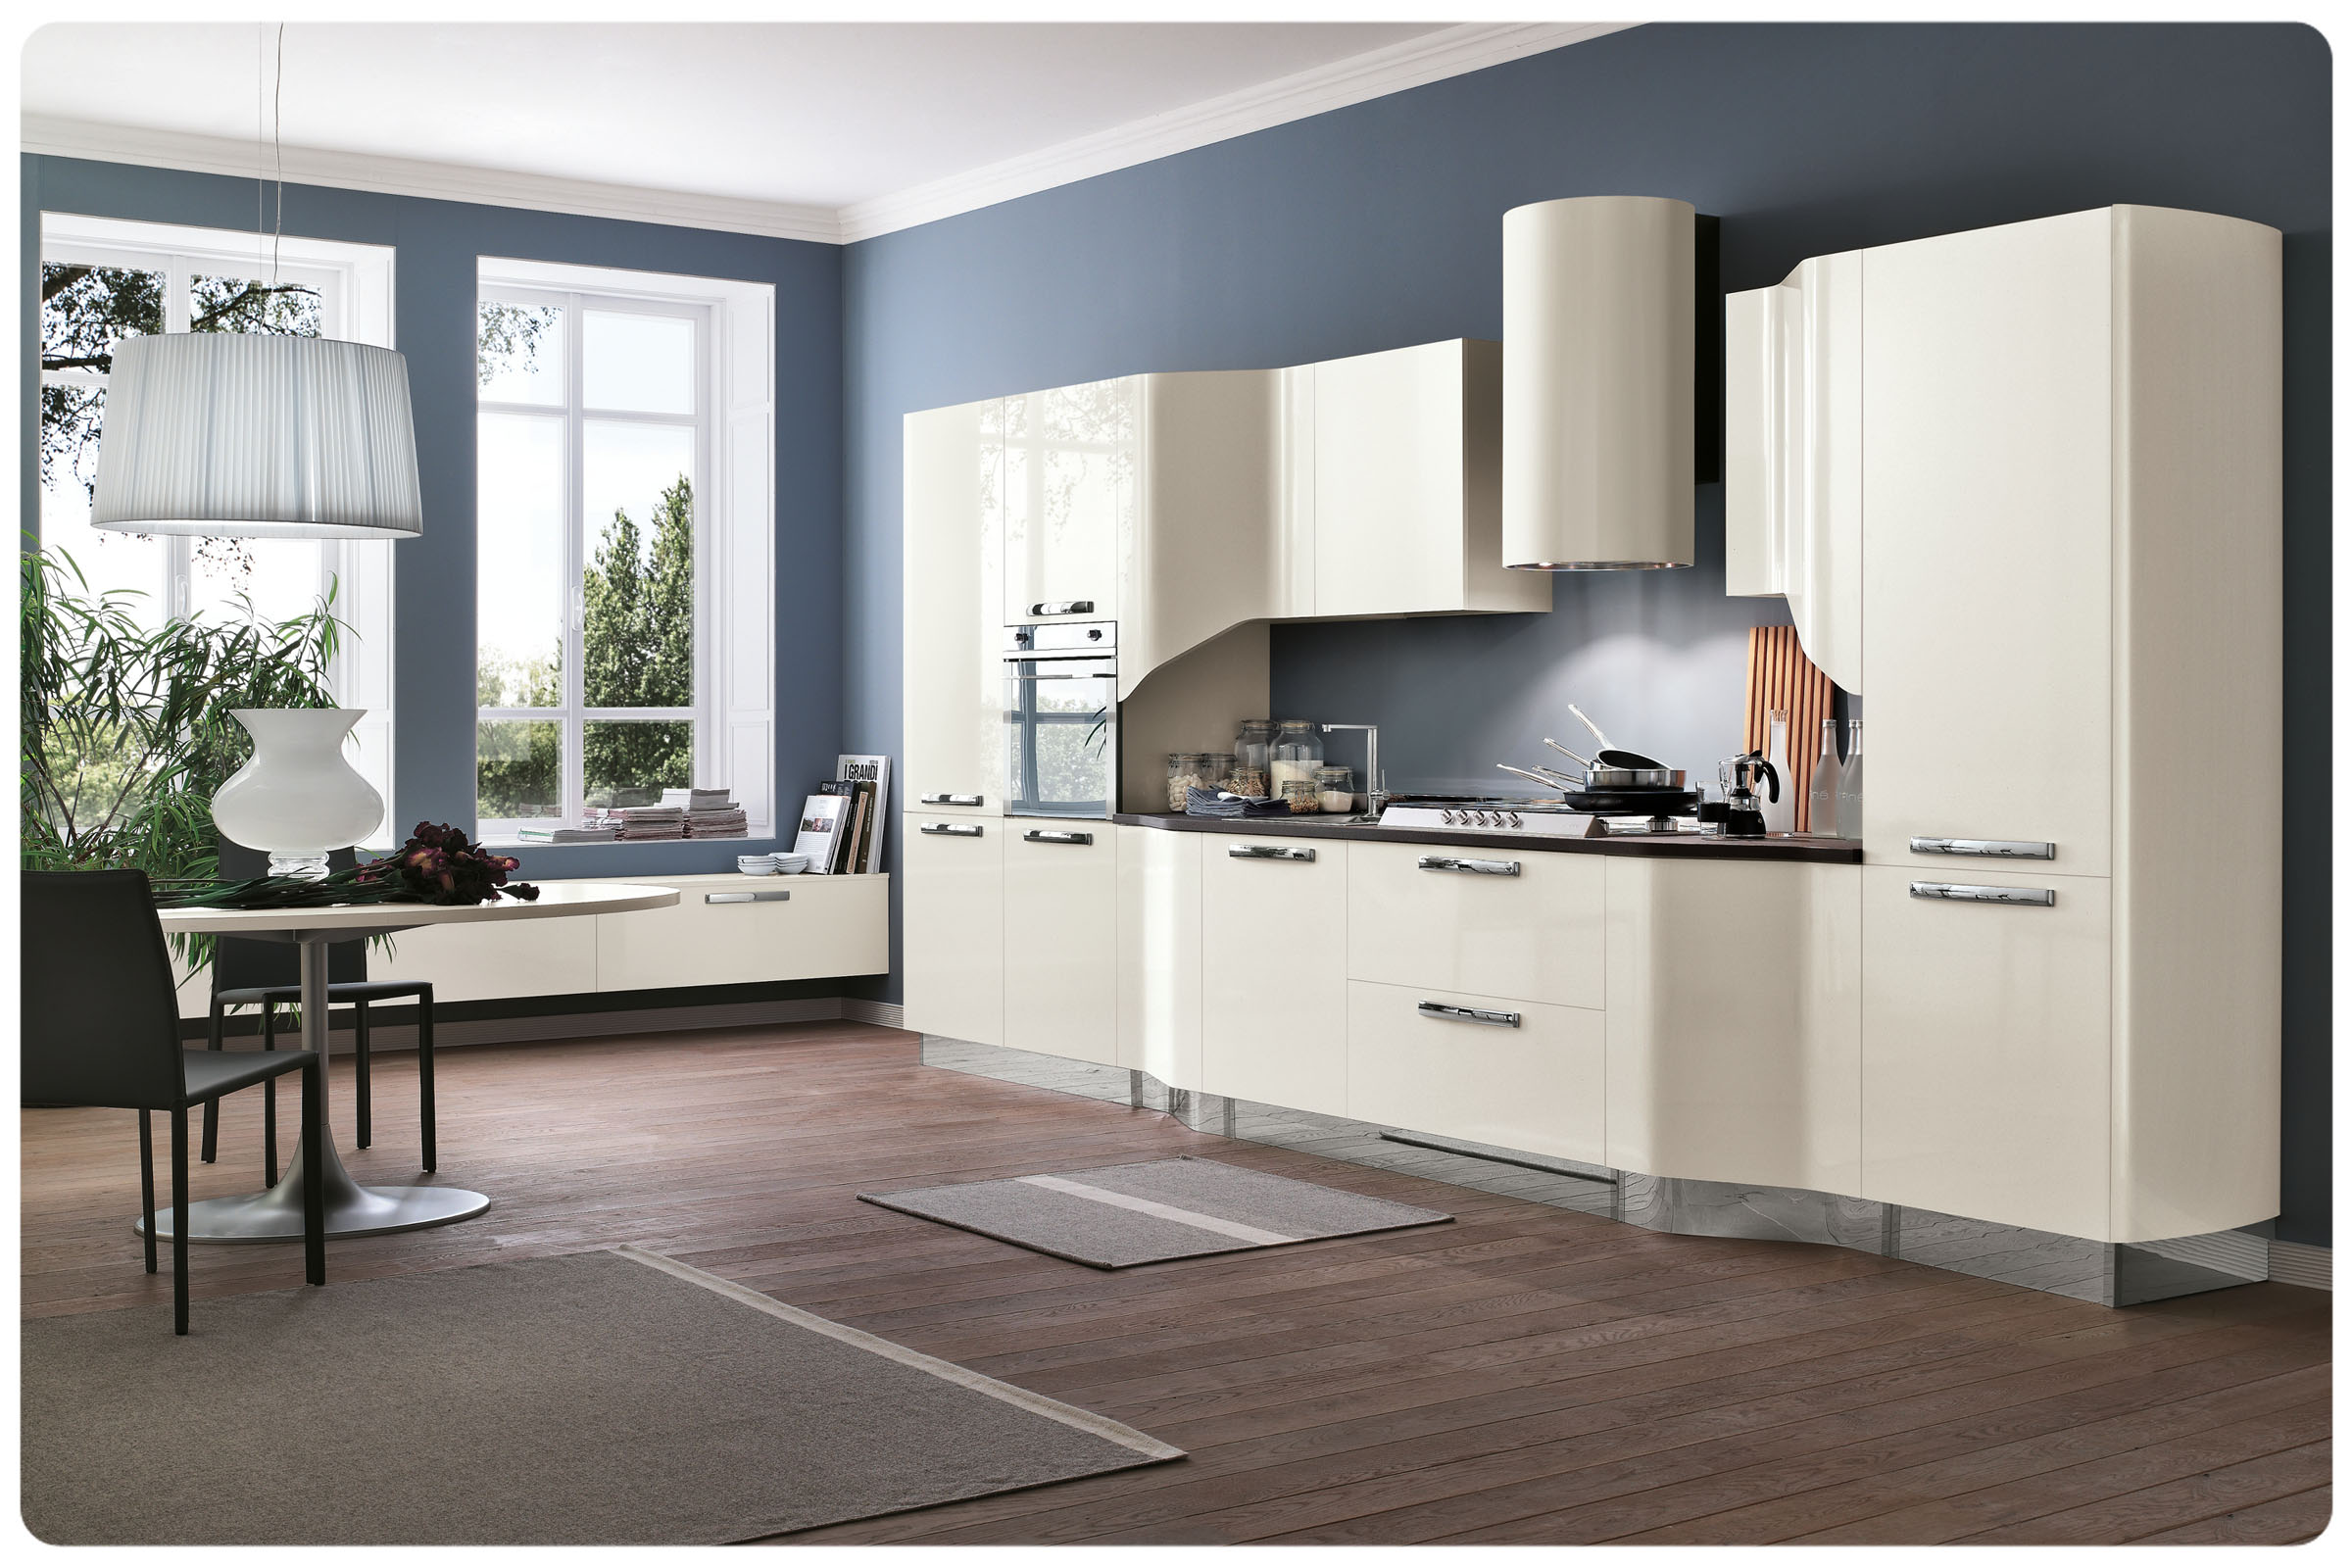 Cucine moderne componibili Stosa Milly 8